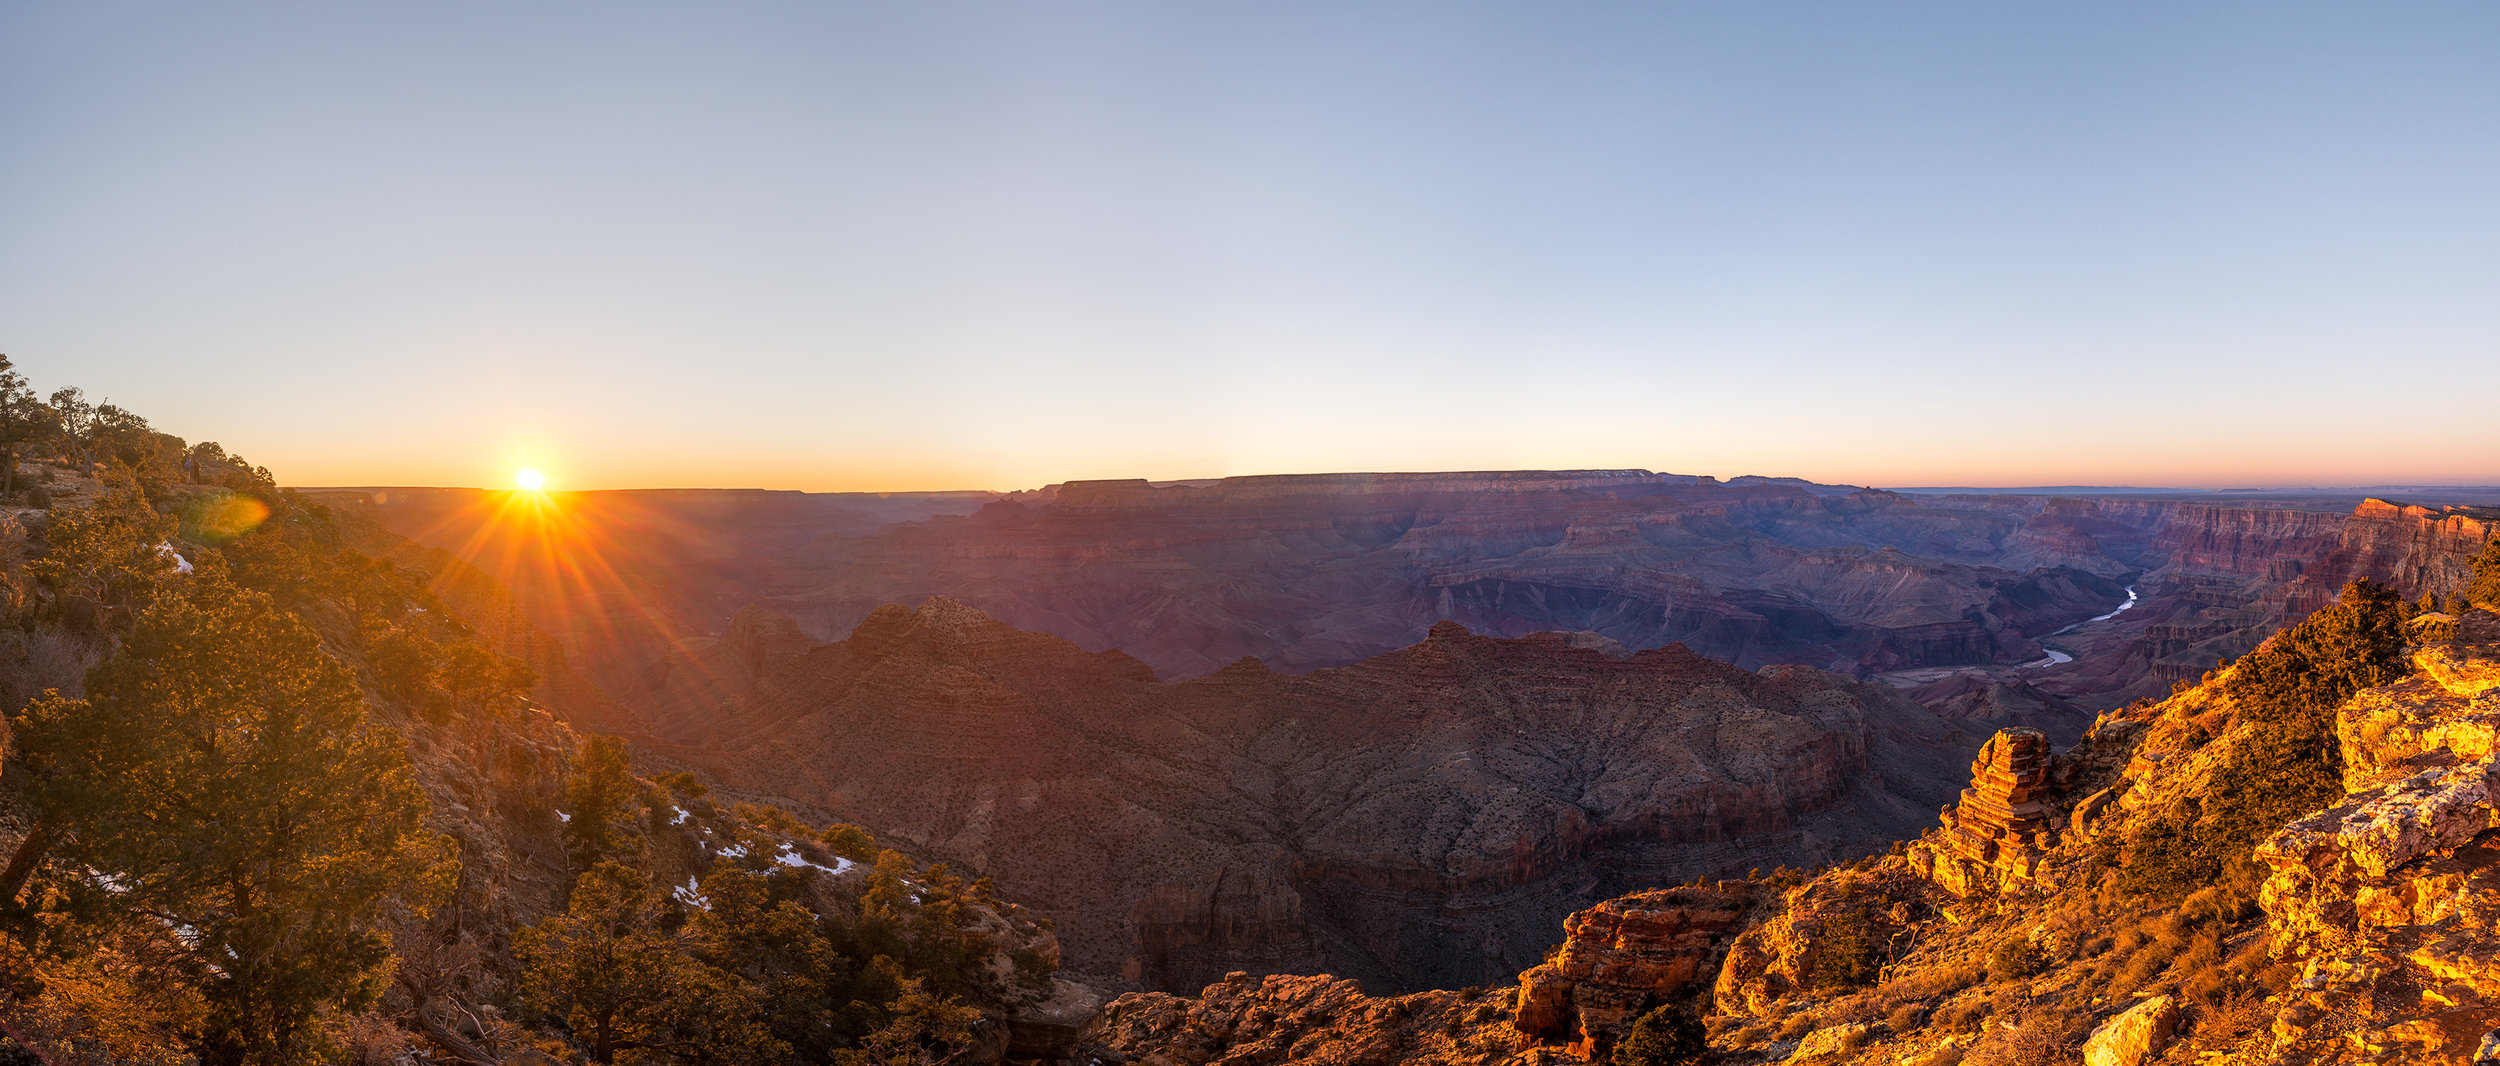 Sunset from Desert View on the South Rim of the Grand Canyon.